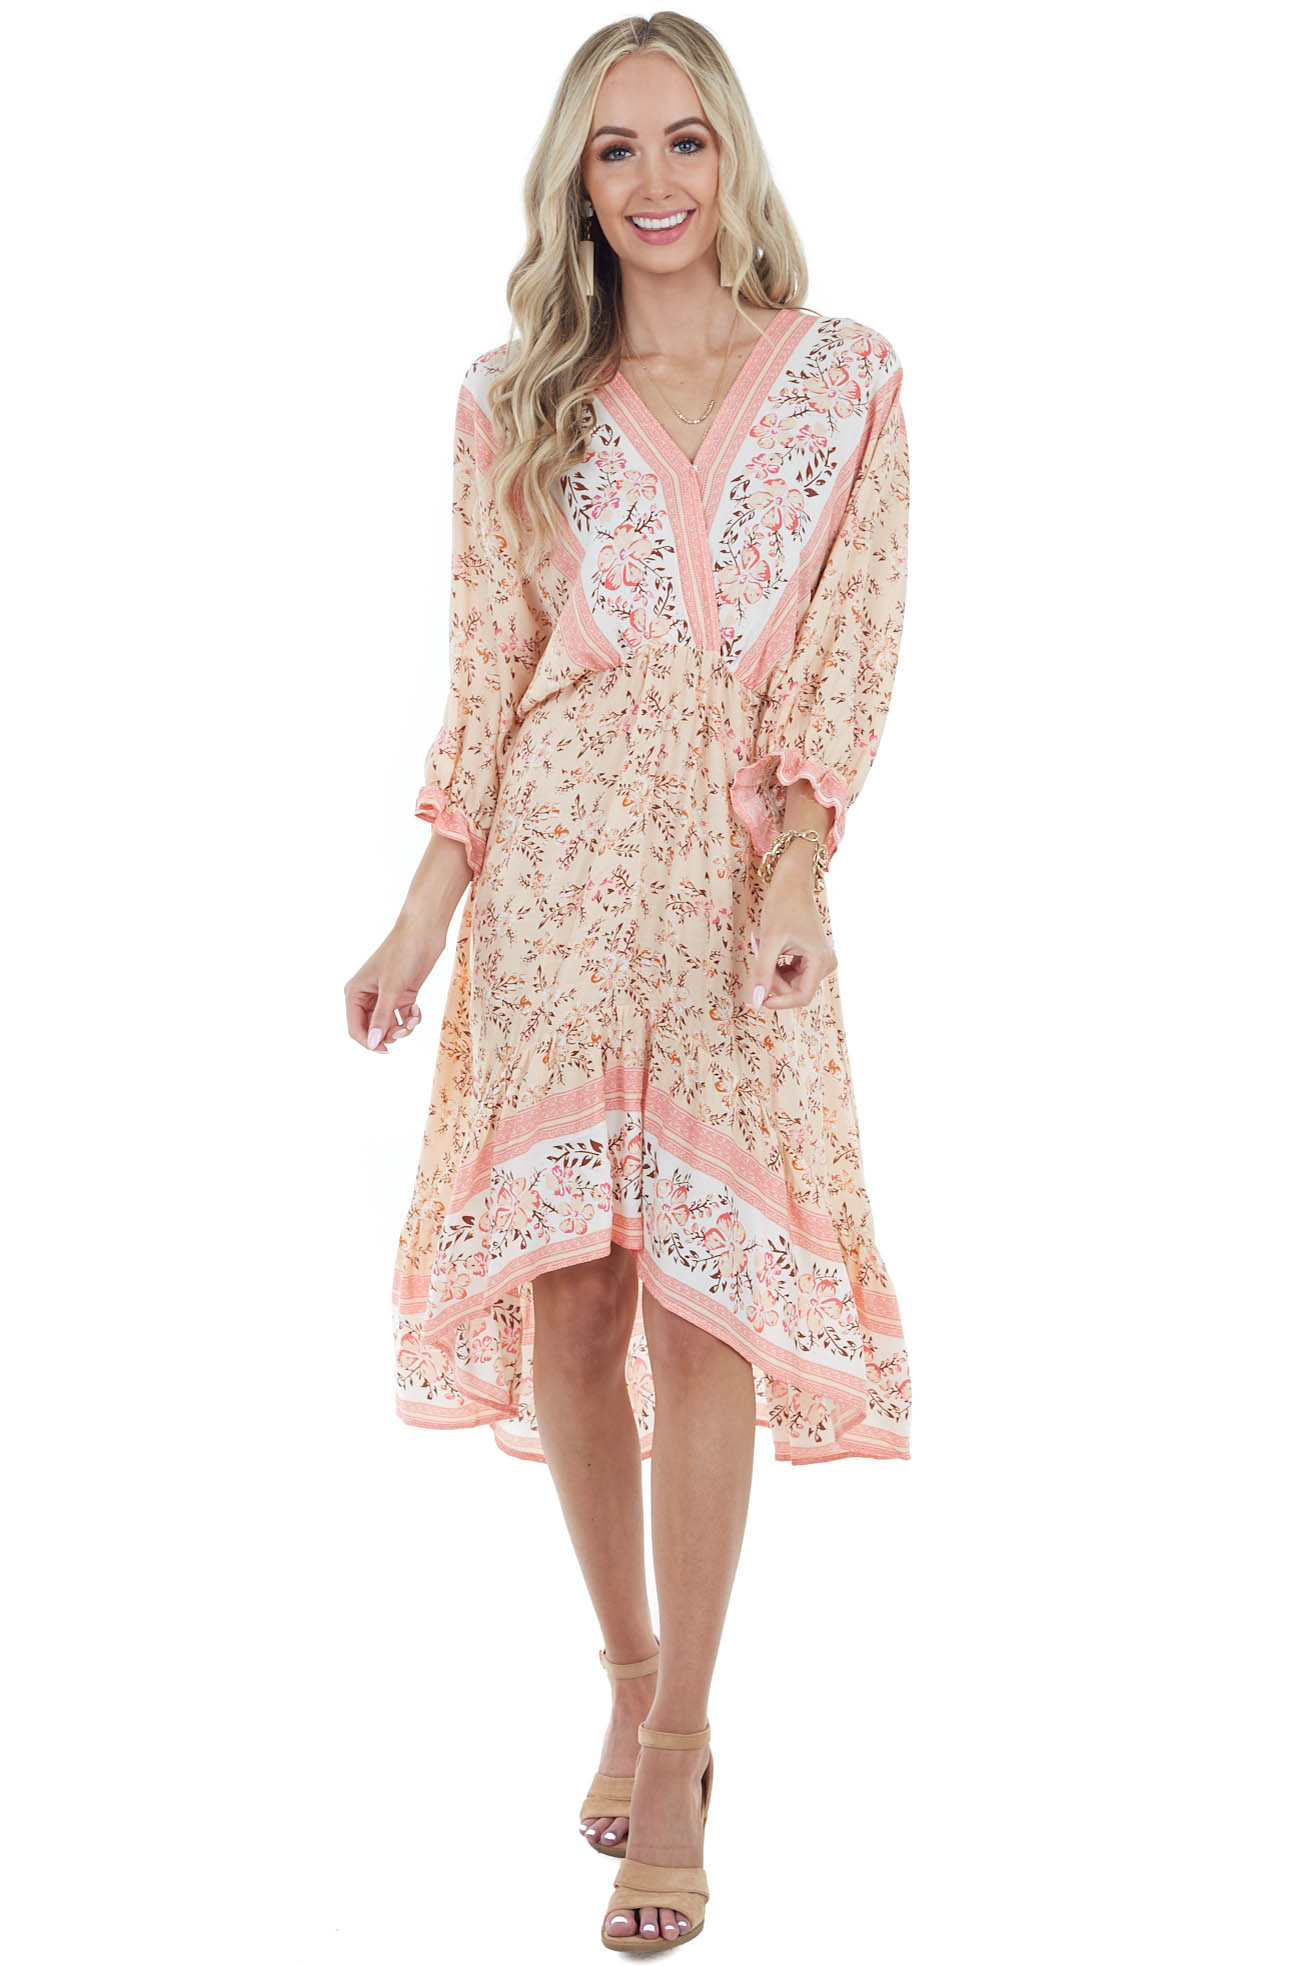 Peach Floral Dolman Sleeve High Low Dress with Tie Detail